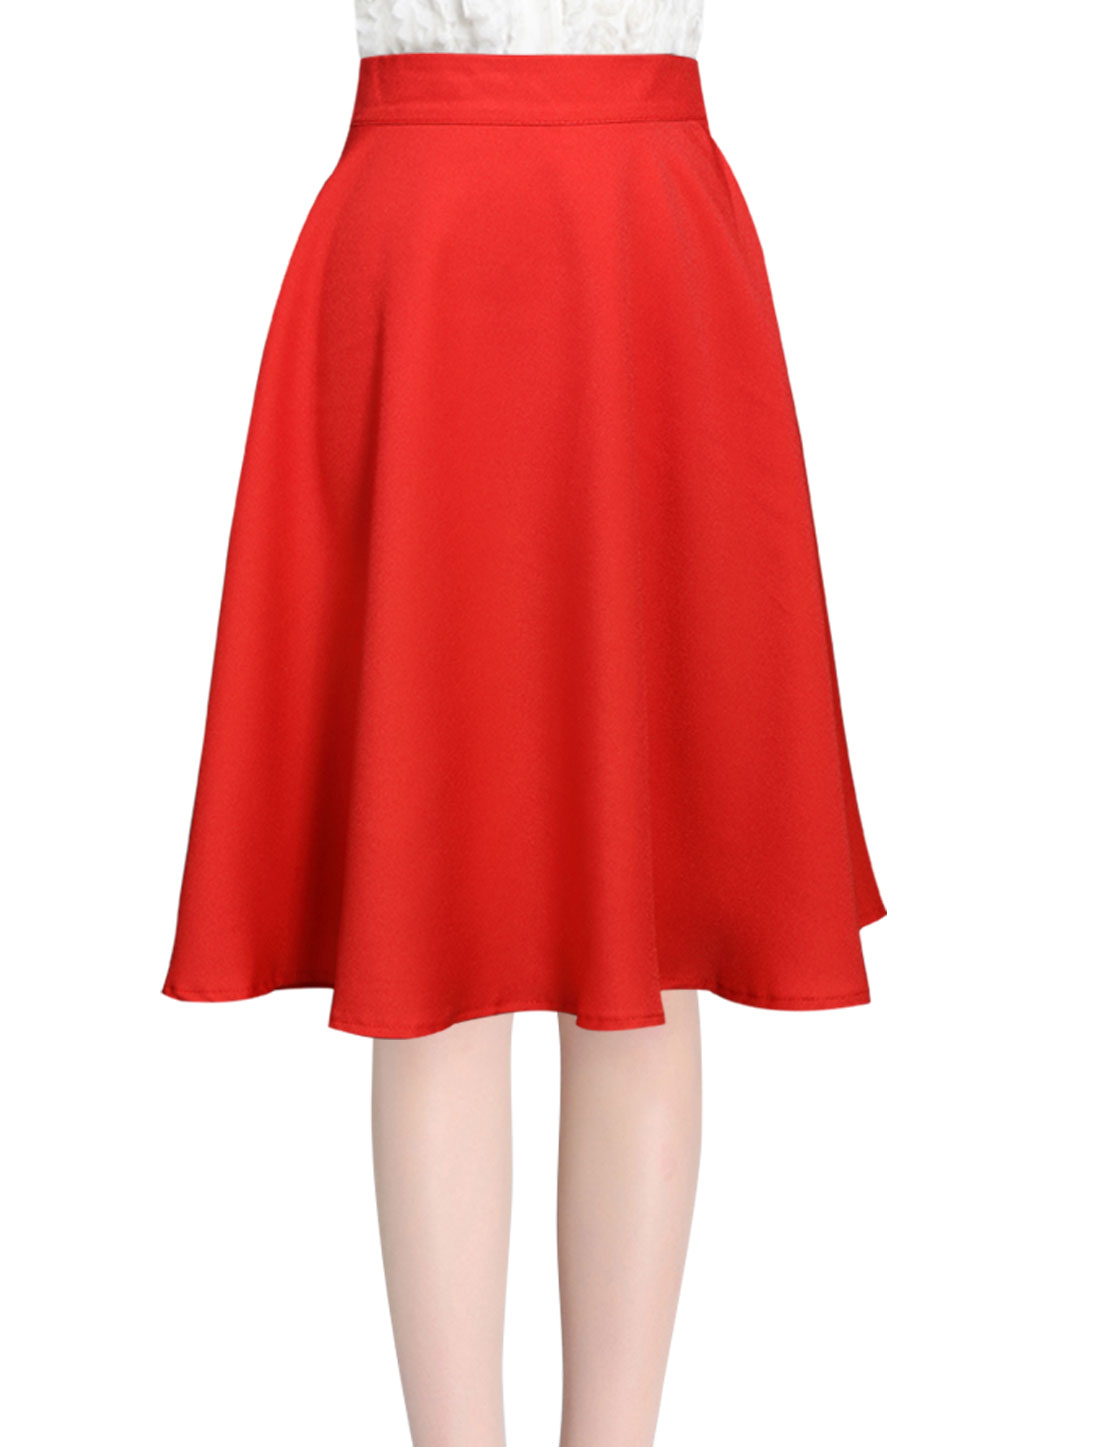 Ladies Elegant Knee Length Mid Rise Stylish Full Skirt Red S